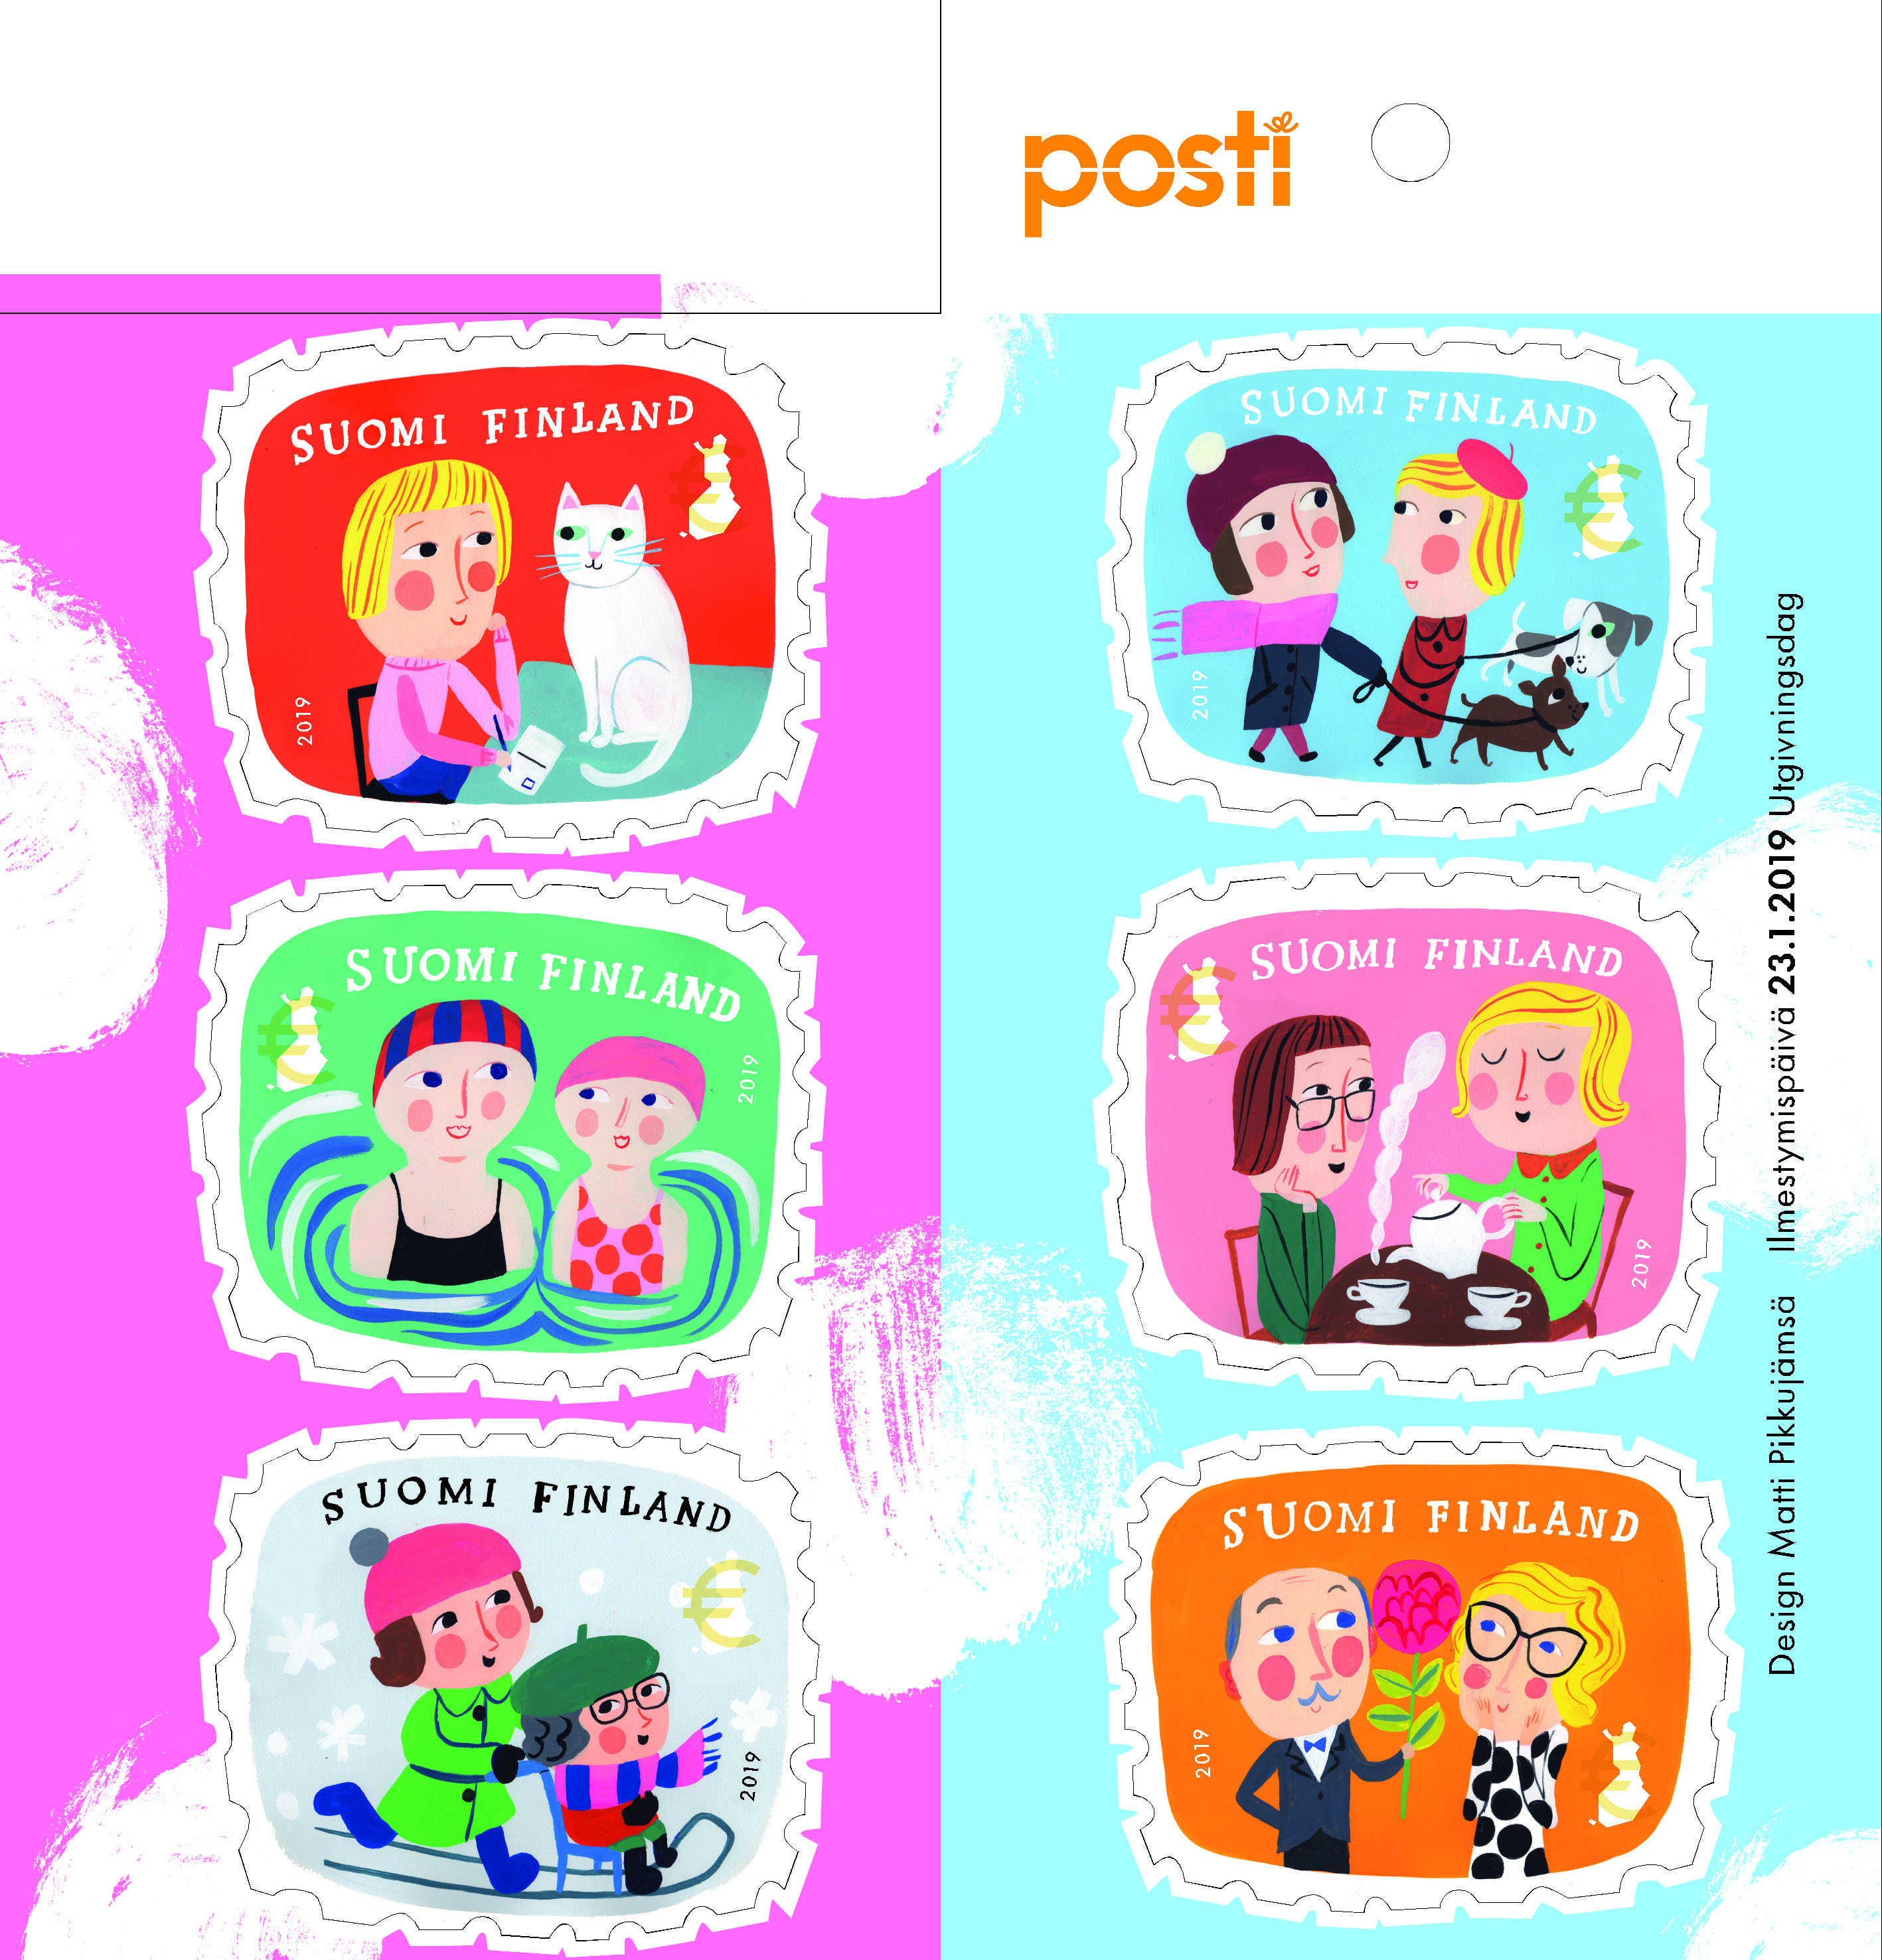 Finland - Shared Joy (January 23, 2019) booklet of 6